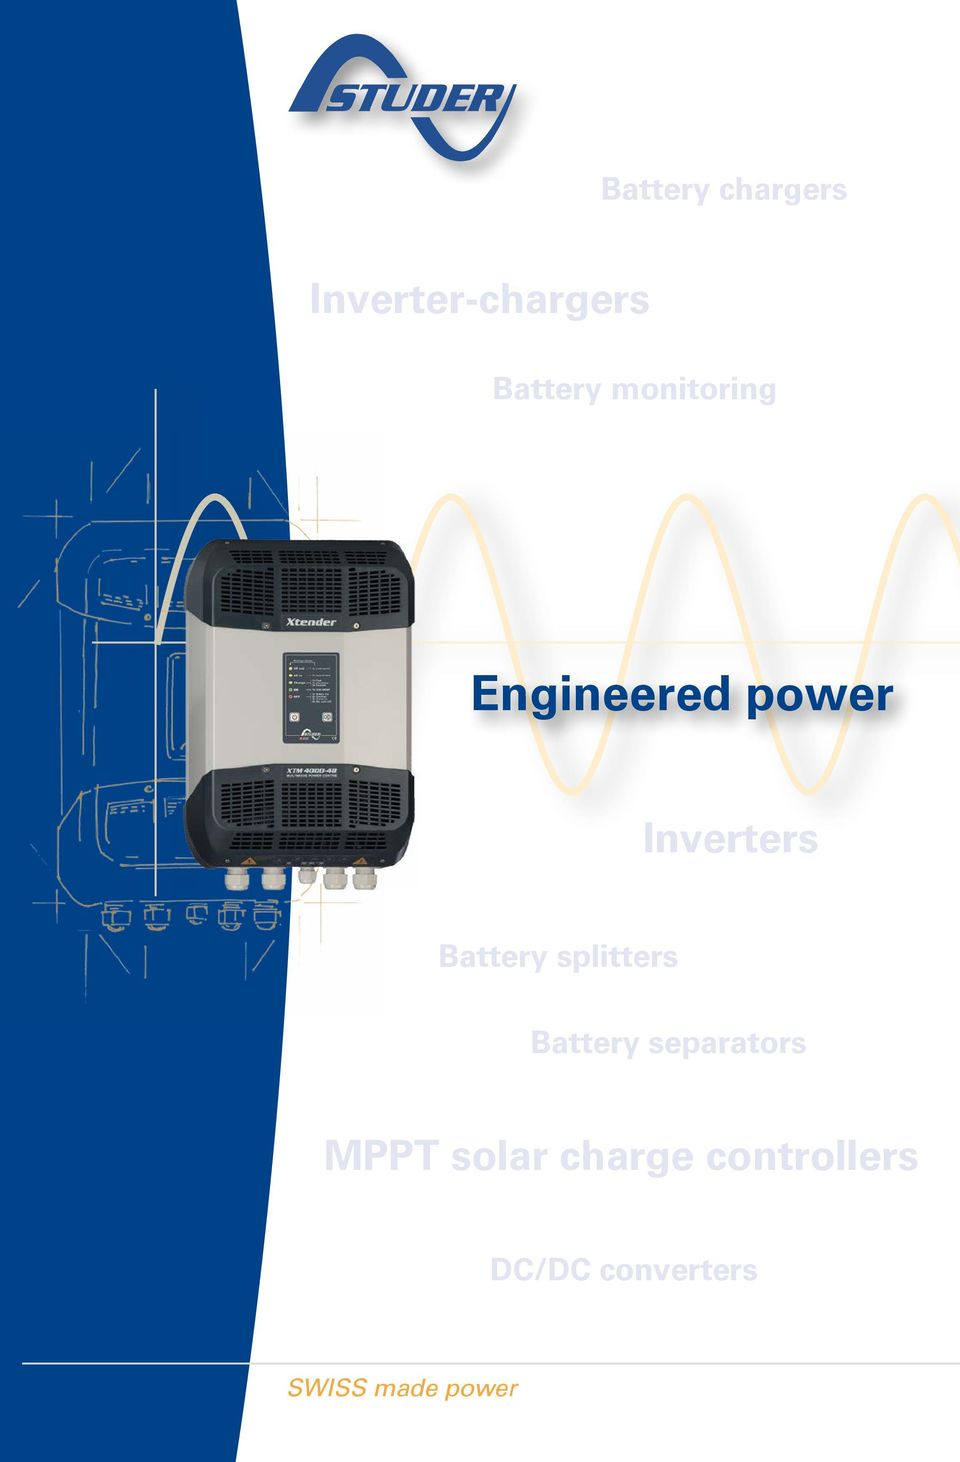 Engineered Power Inverter Chargers Inverters Mppt Solar Charge Controller 145v Open Circuit Voltage Controllers Converters Swiss Made Battery Splitters Separators